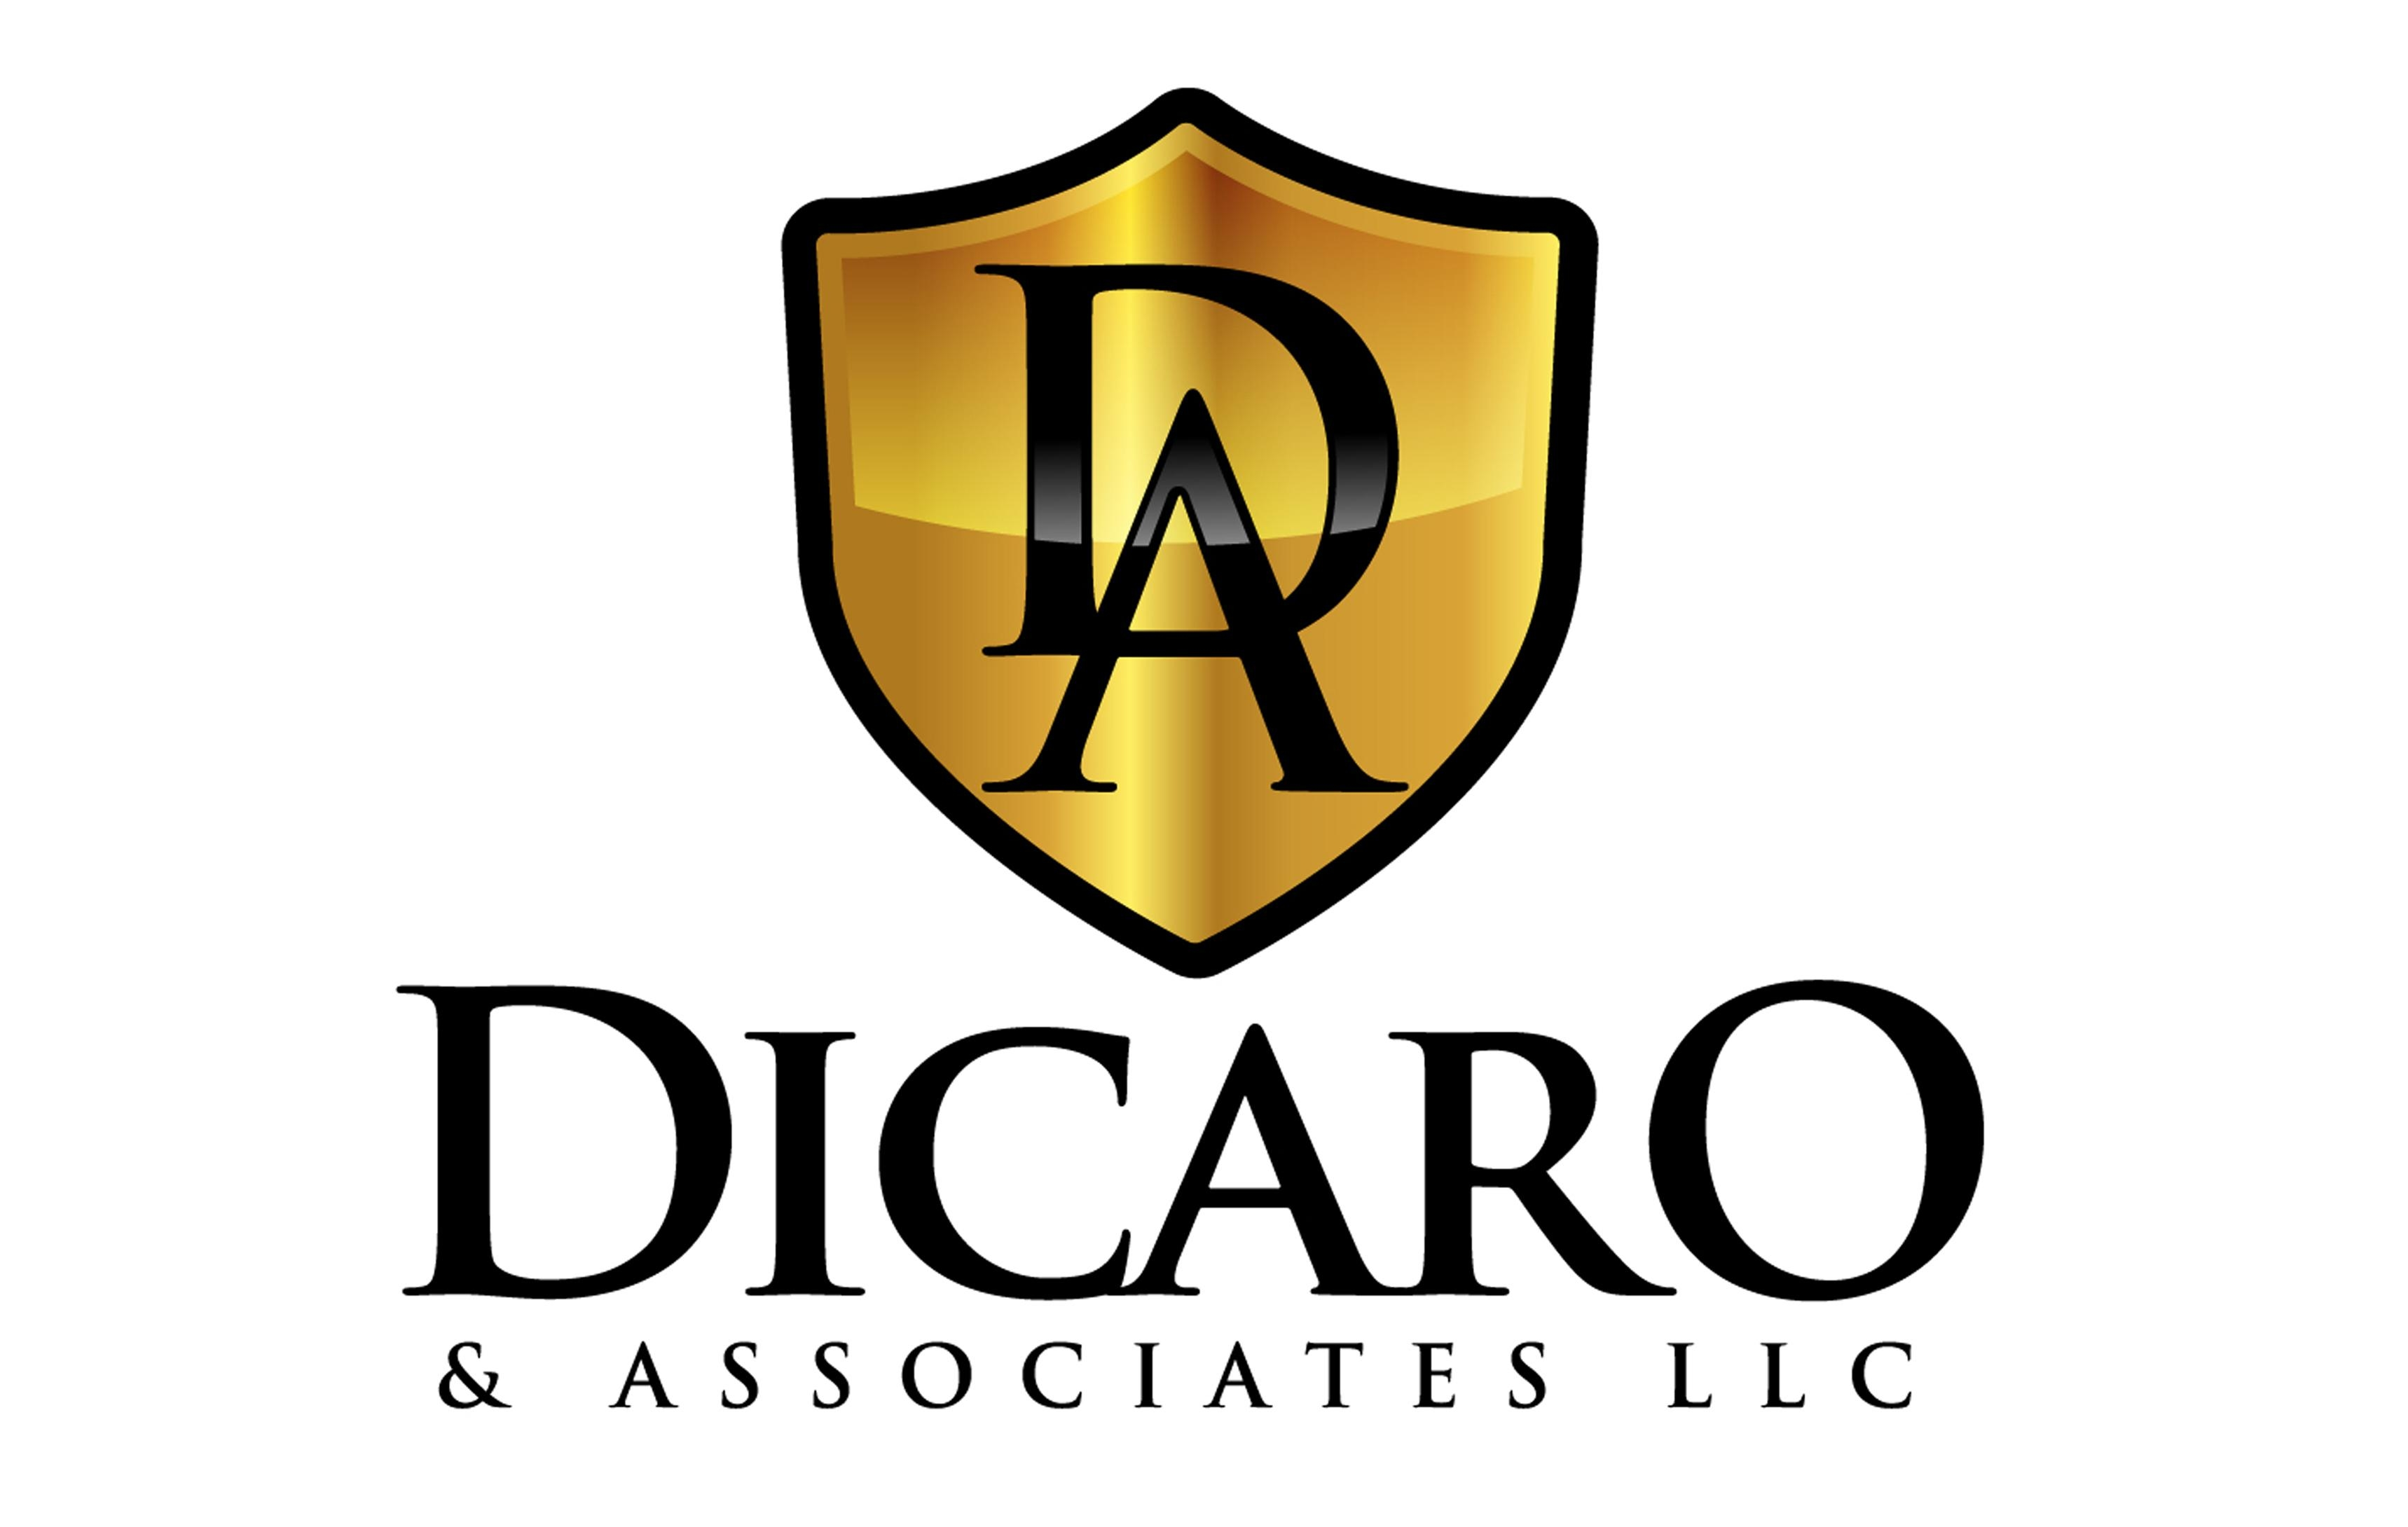 DICARO & ASSOCIATES, LLC